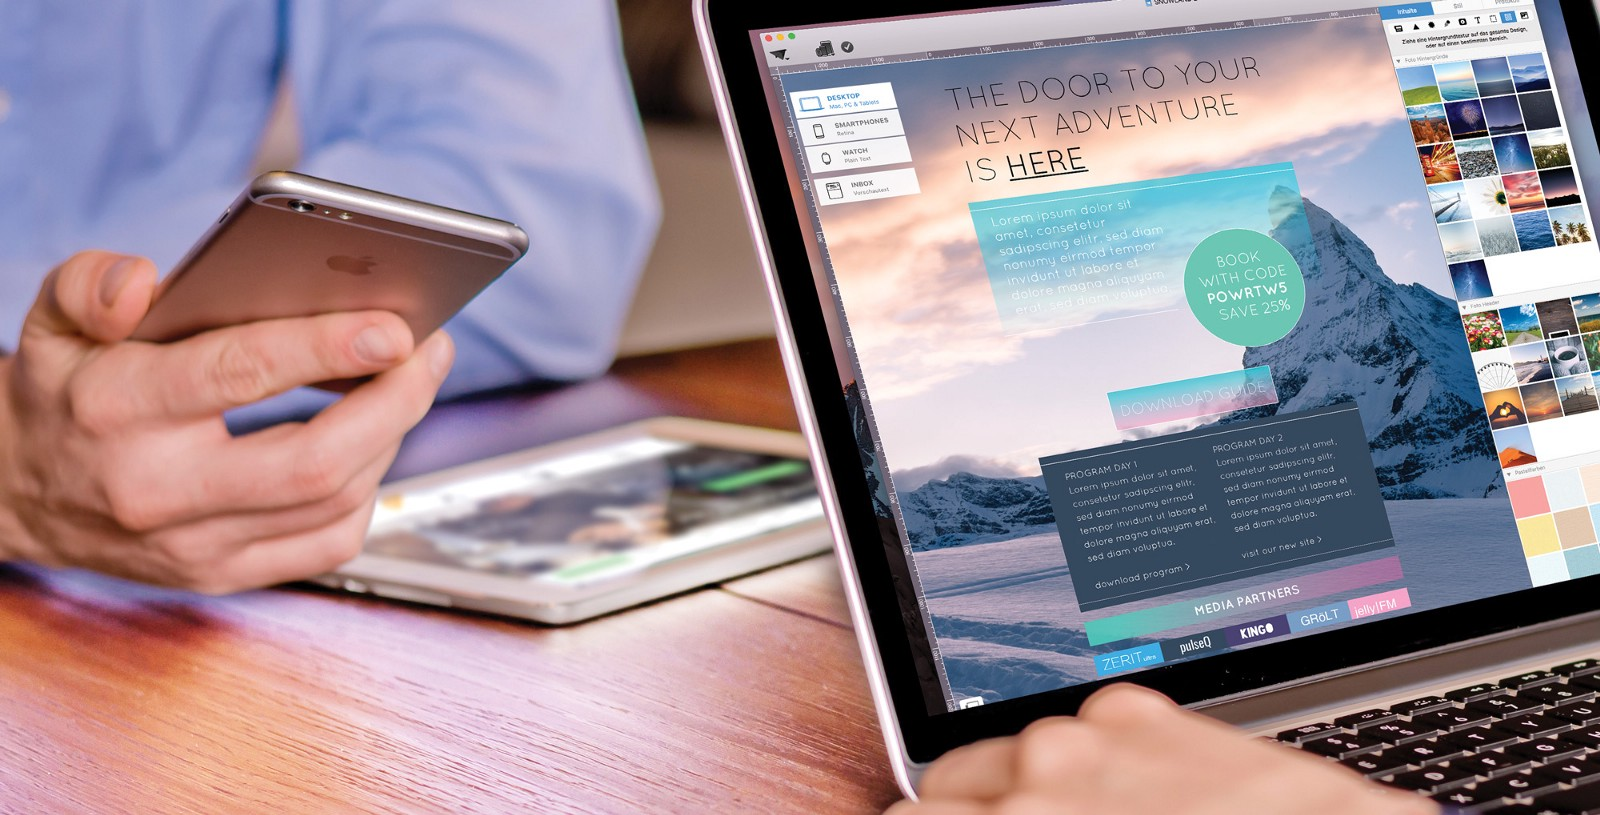 Tips For Creating Real Hero Newsletters With Wallpaper Images And